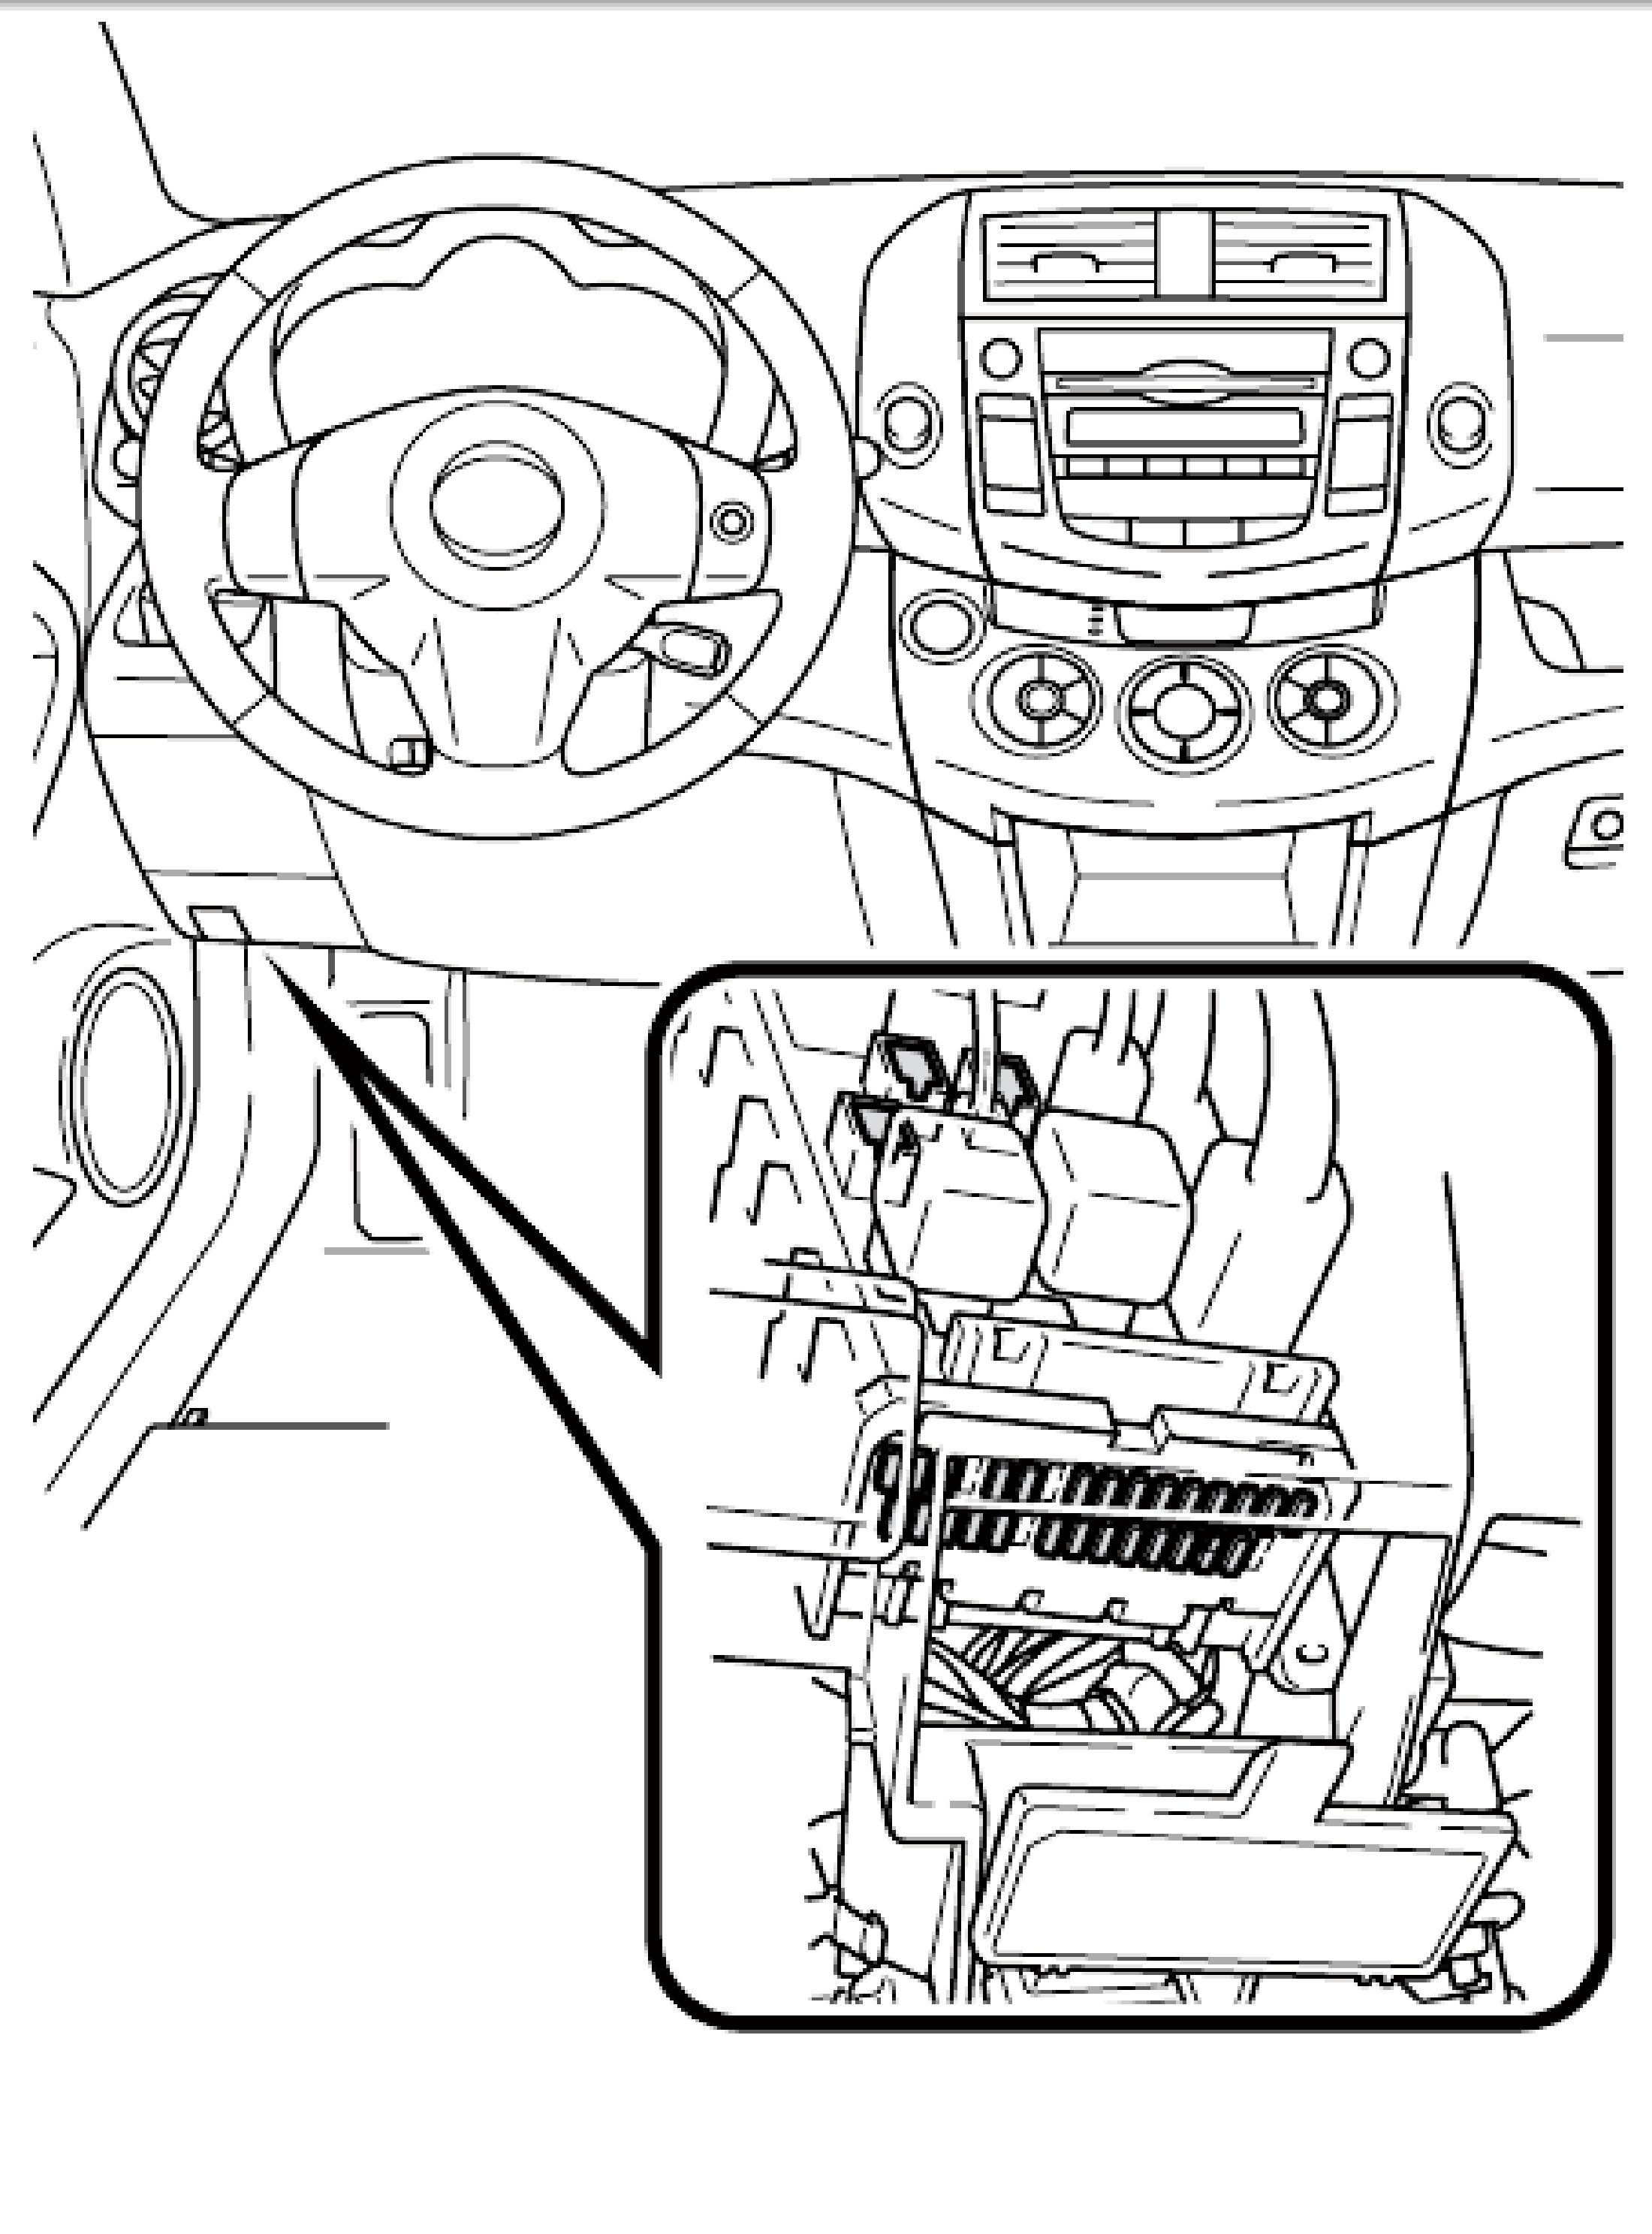 toyota rav4 fuse box location GCKEDBA rav4 fuse box location 1998 wiring diagrams instruction 2014 rav4 fuse box diagram at readyjetset.co